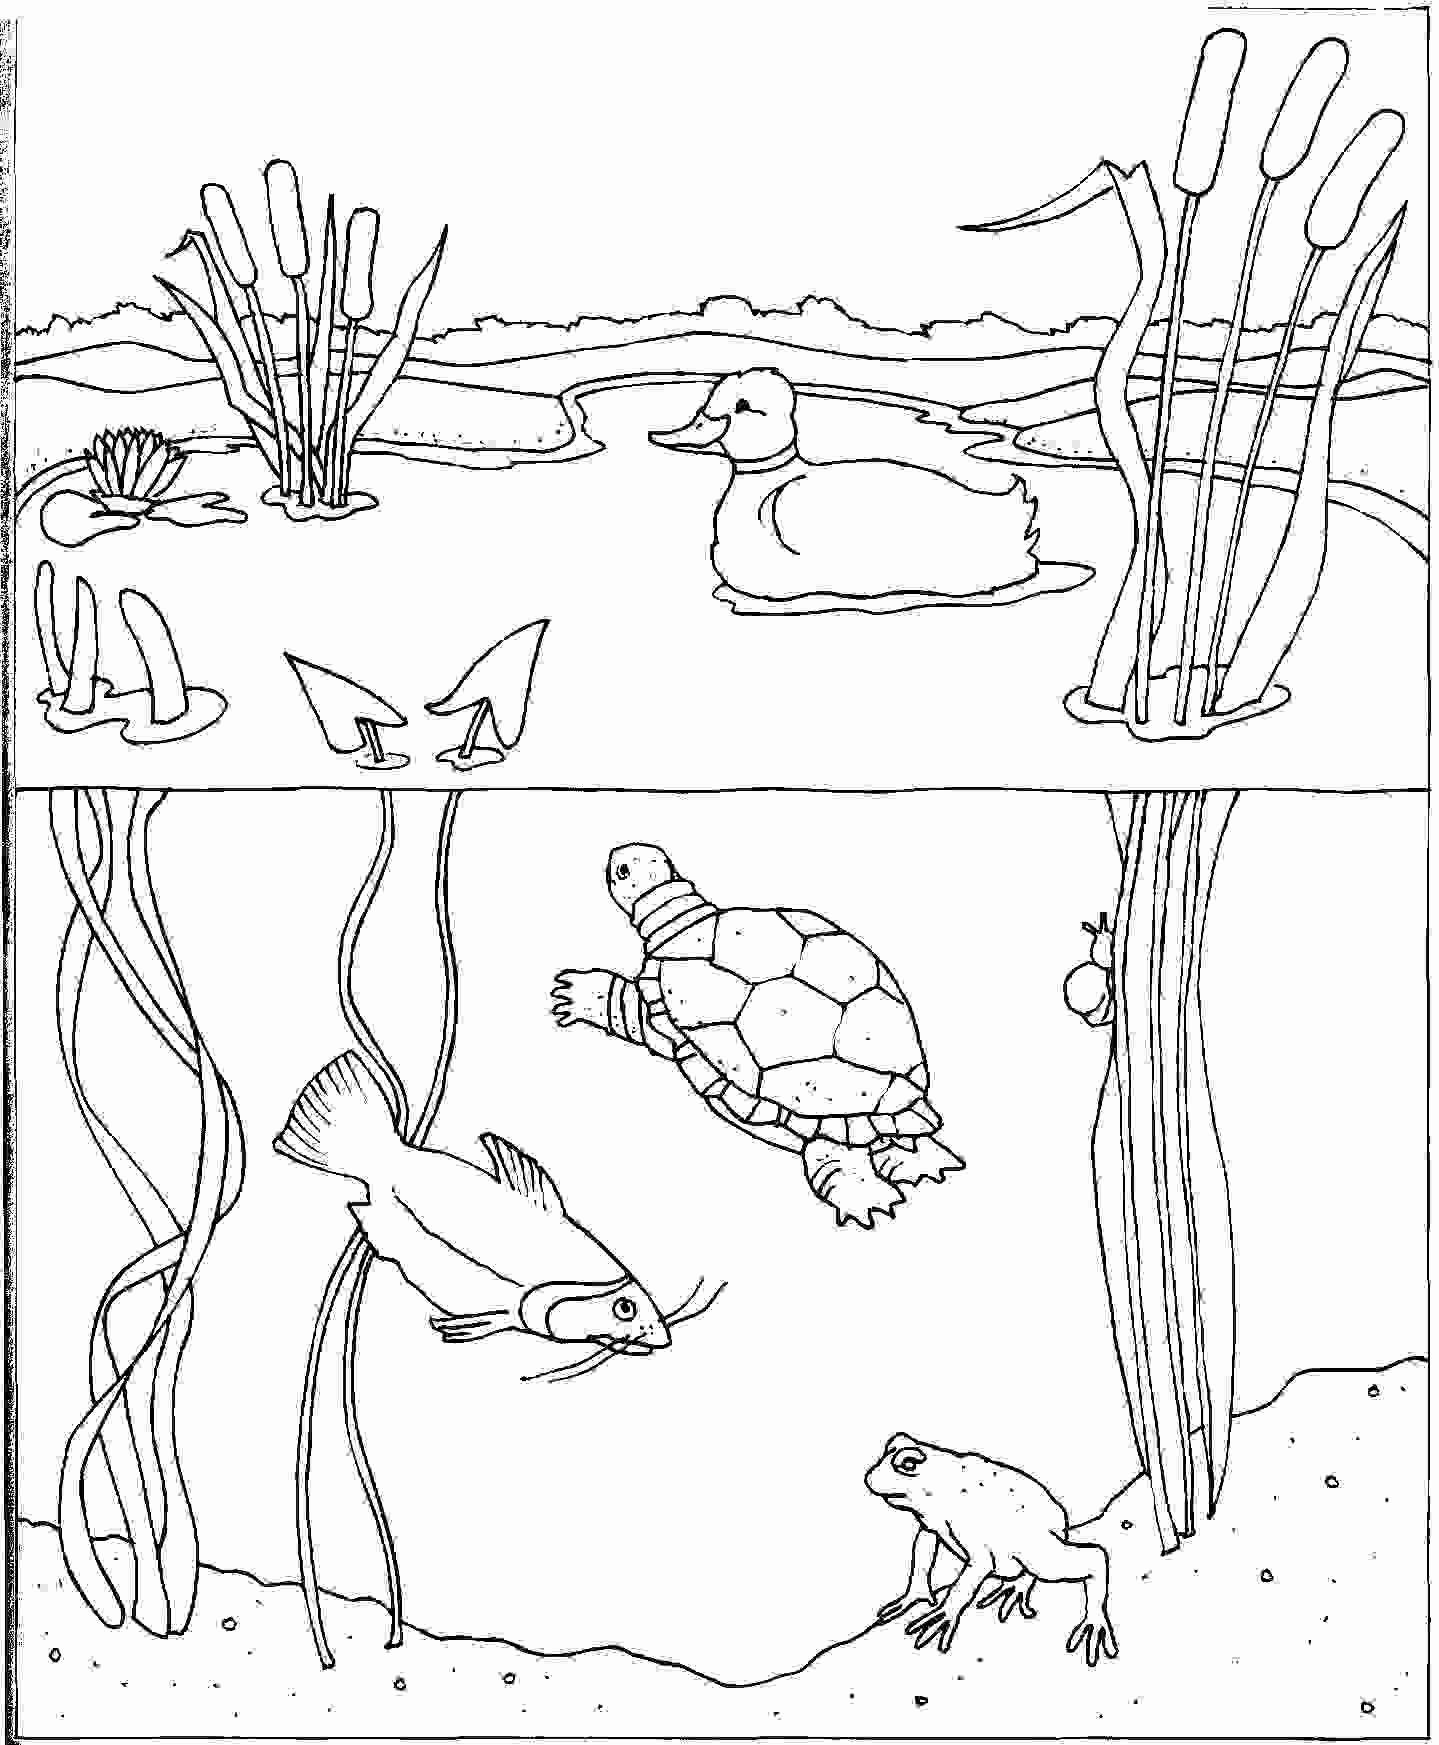 Water Cycle Coloring Page Inspirational Coloring Pages